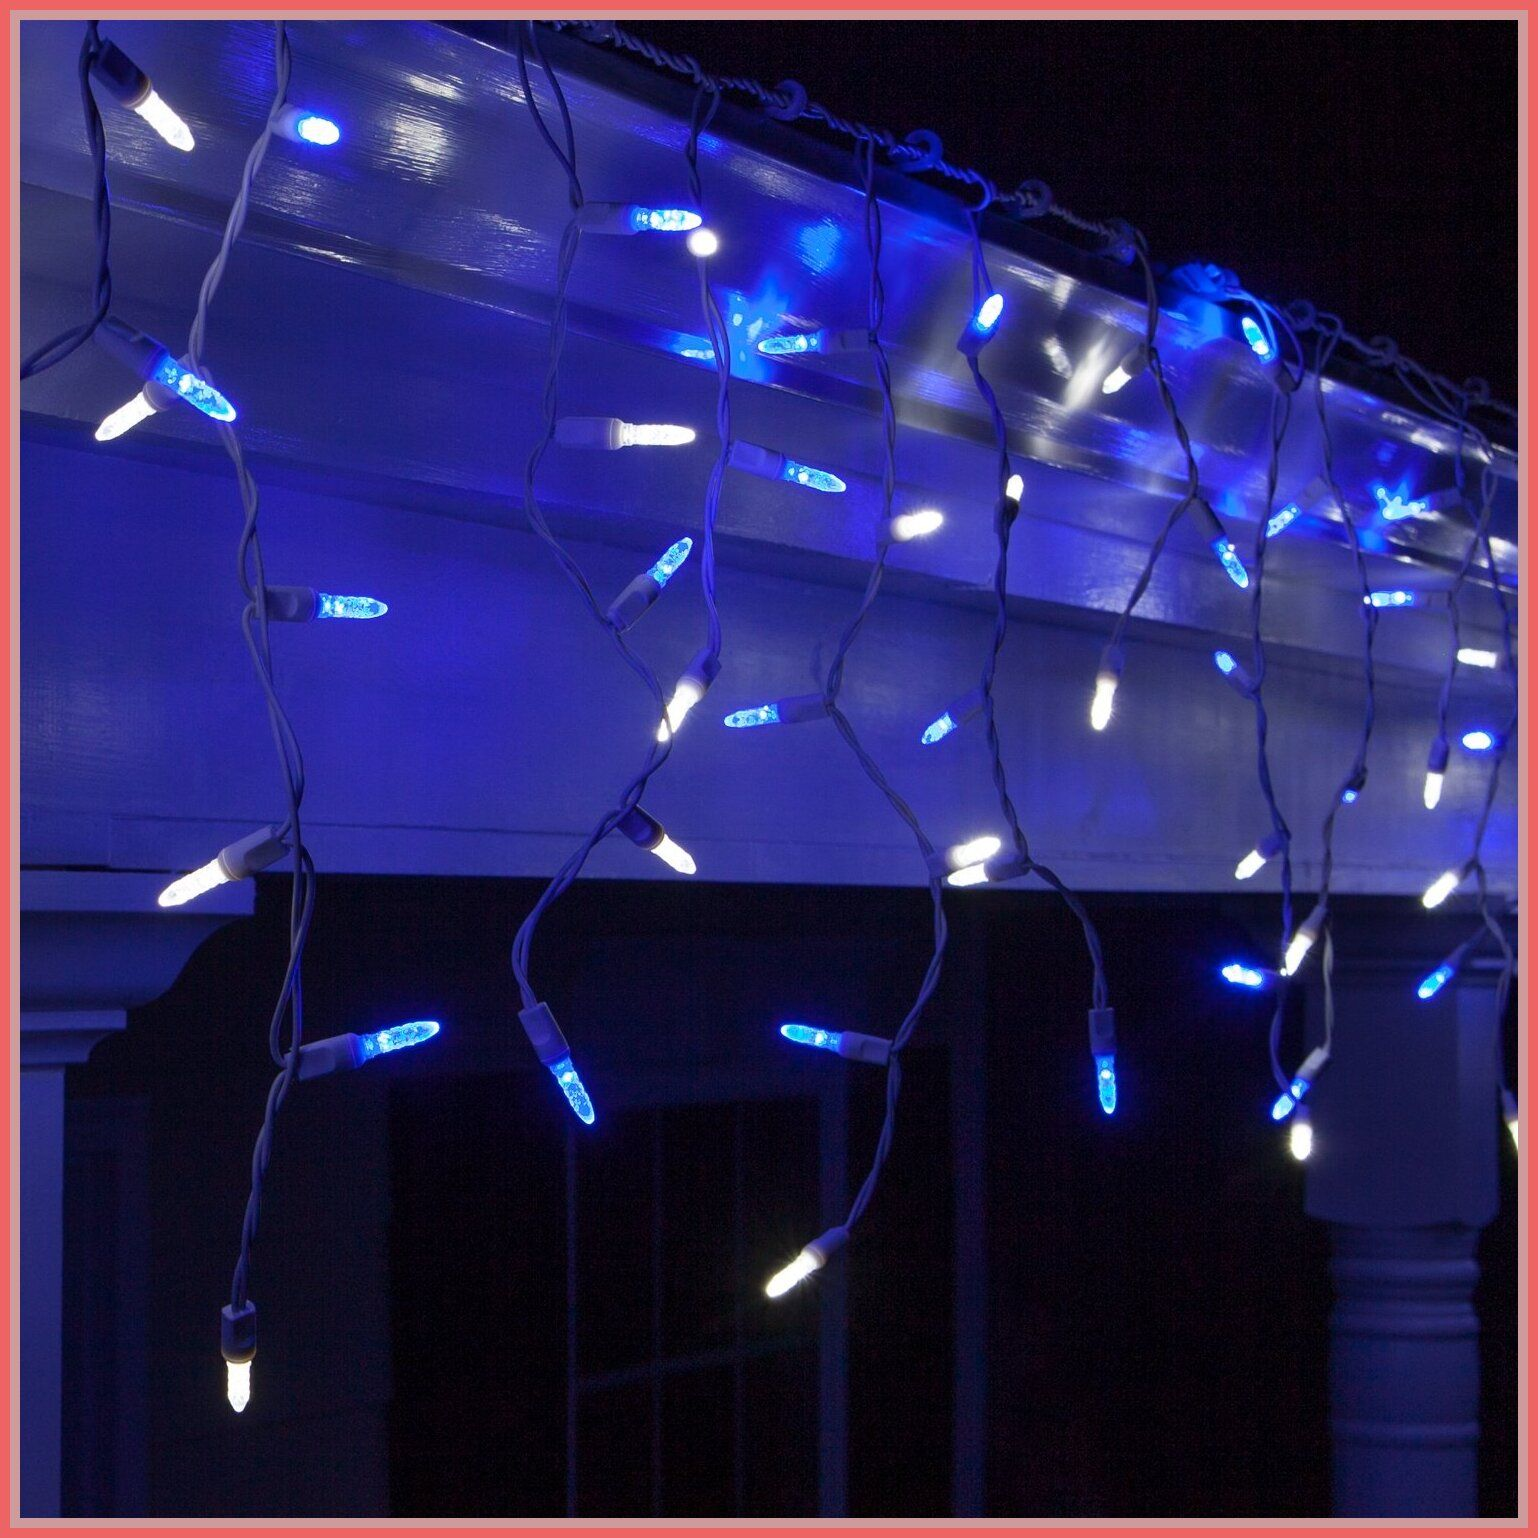 82 Reference Of Led Icicle Lights Bright White In 2020 White Christmas Lights Led Icicle Lights Icicle Lights Outdoor